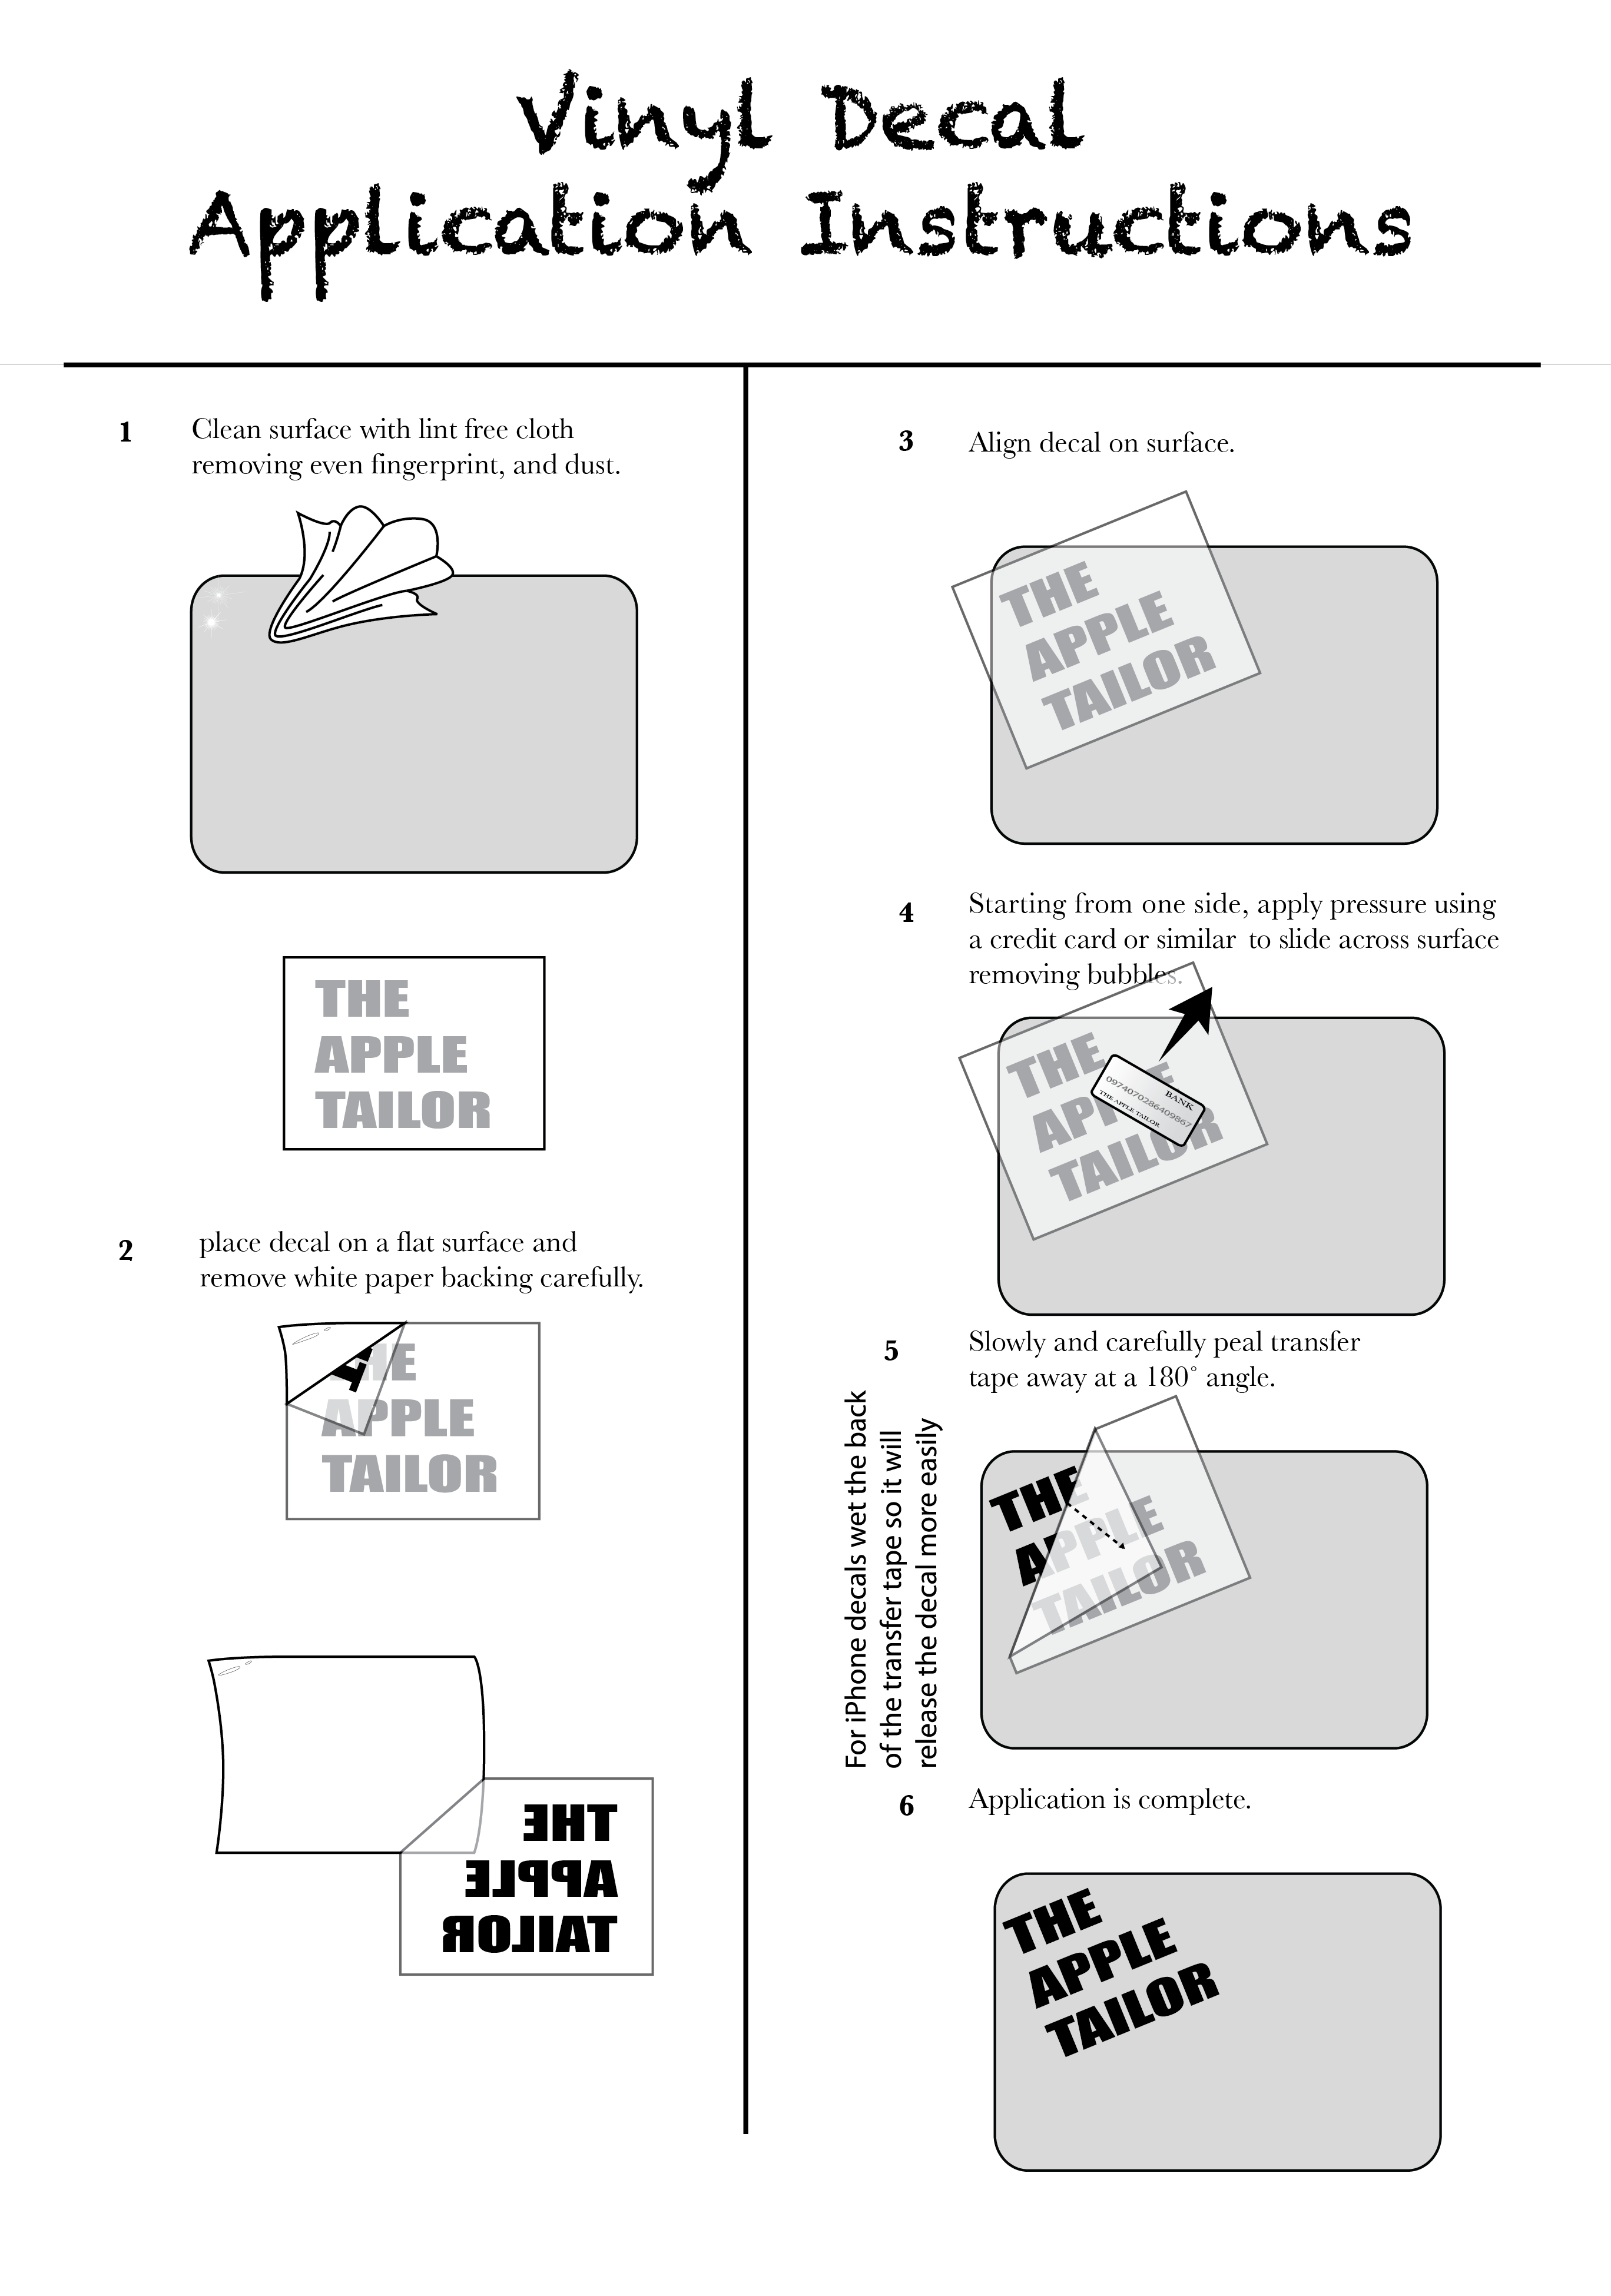 Old Fashioned image for decal application instructions printable